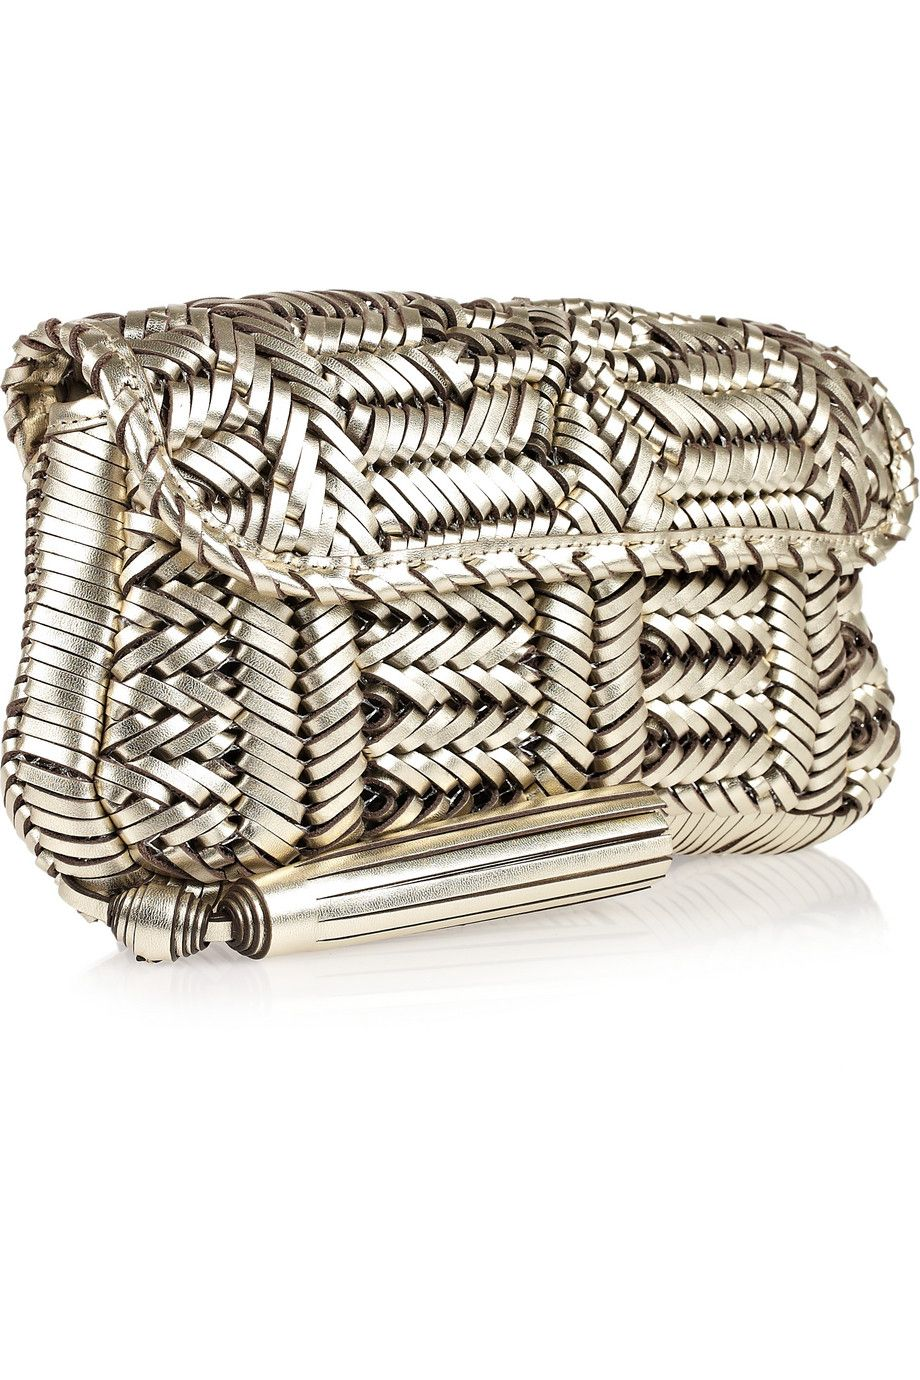 Love this detail by Anya Hindmarch - Rossum woven leather clutch.